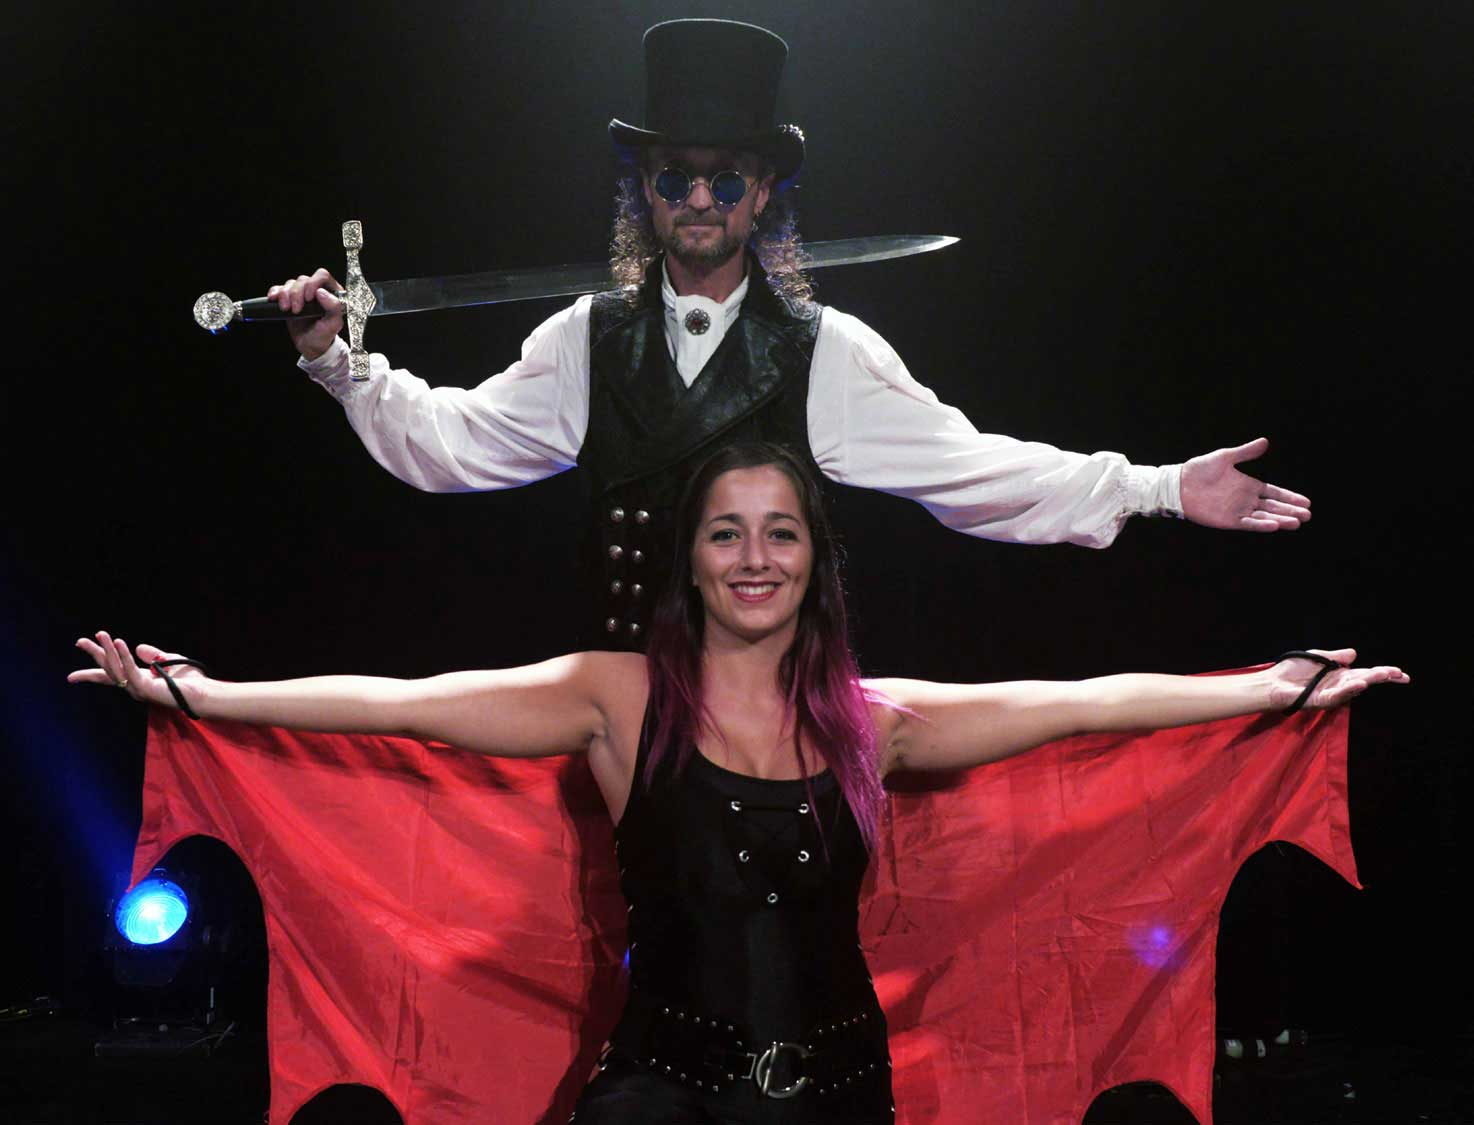 Loran the illusionist with Kristel